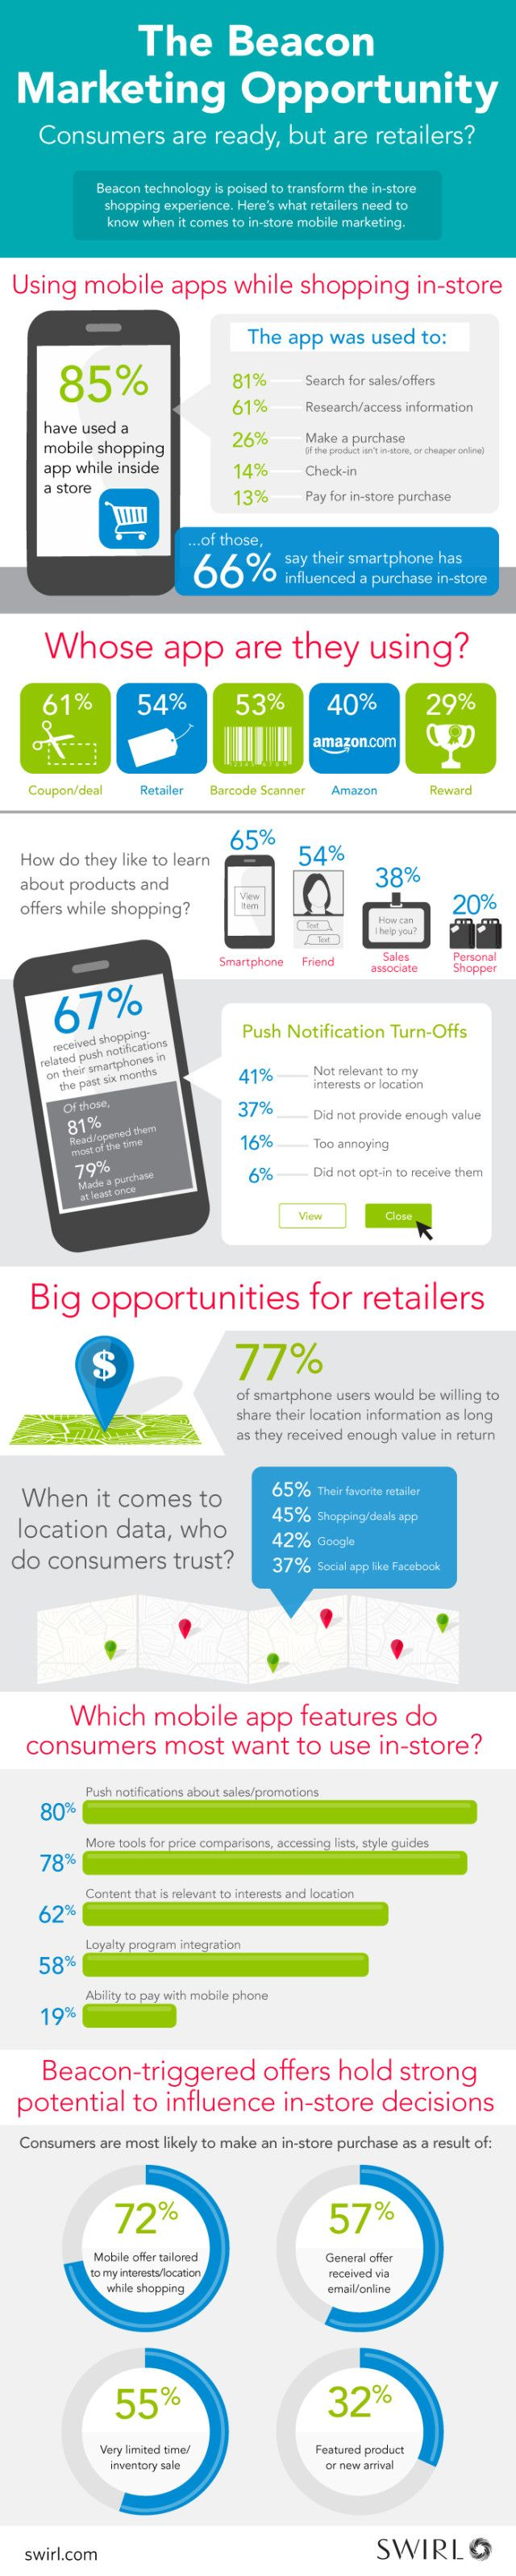 How Retailers Can Use Beacon Technology for Marketing